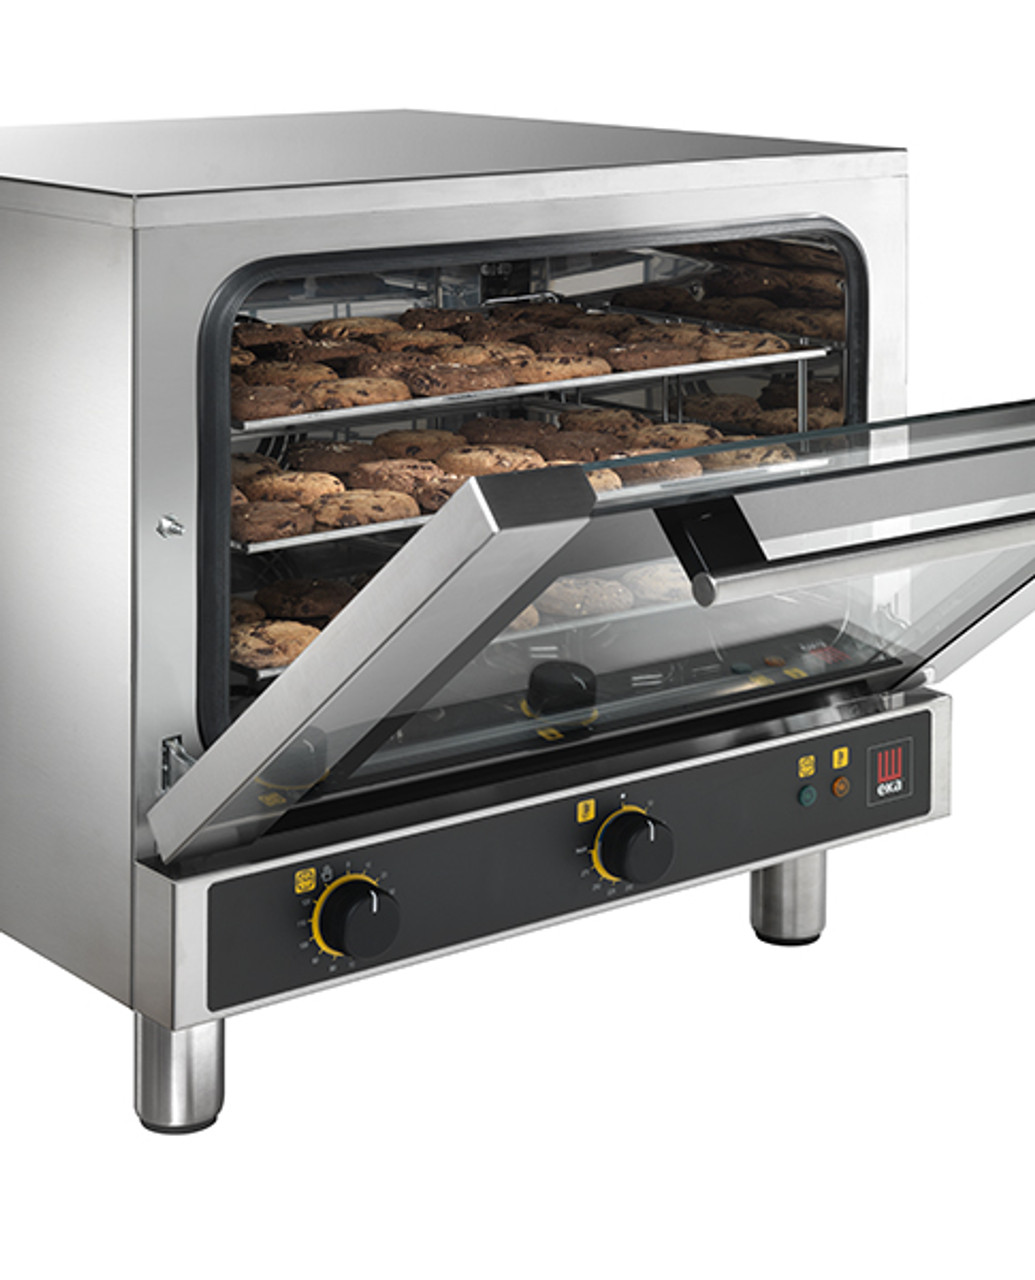 """Eka 3-tray, half-size (13x18) convection oven with electro-mechanical control.  Stainless steel construction.  Top-opening (bottom-hinged) door.  Auto-reversing, bi-directional fan.  Operates on 120v.  Three 13"""" x 18"""" grids included."""